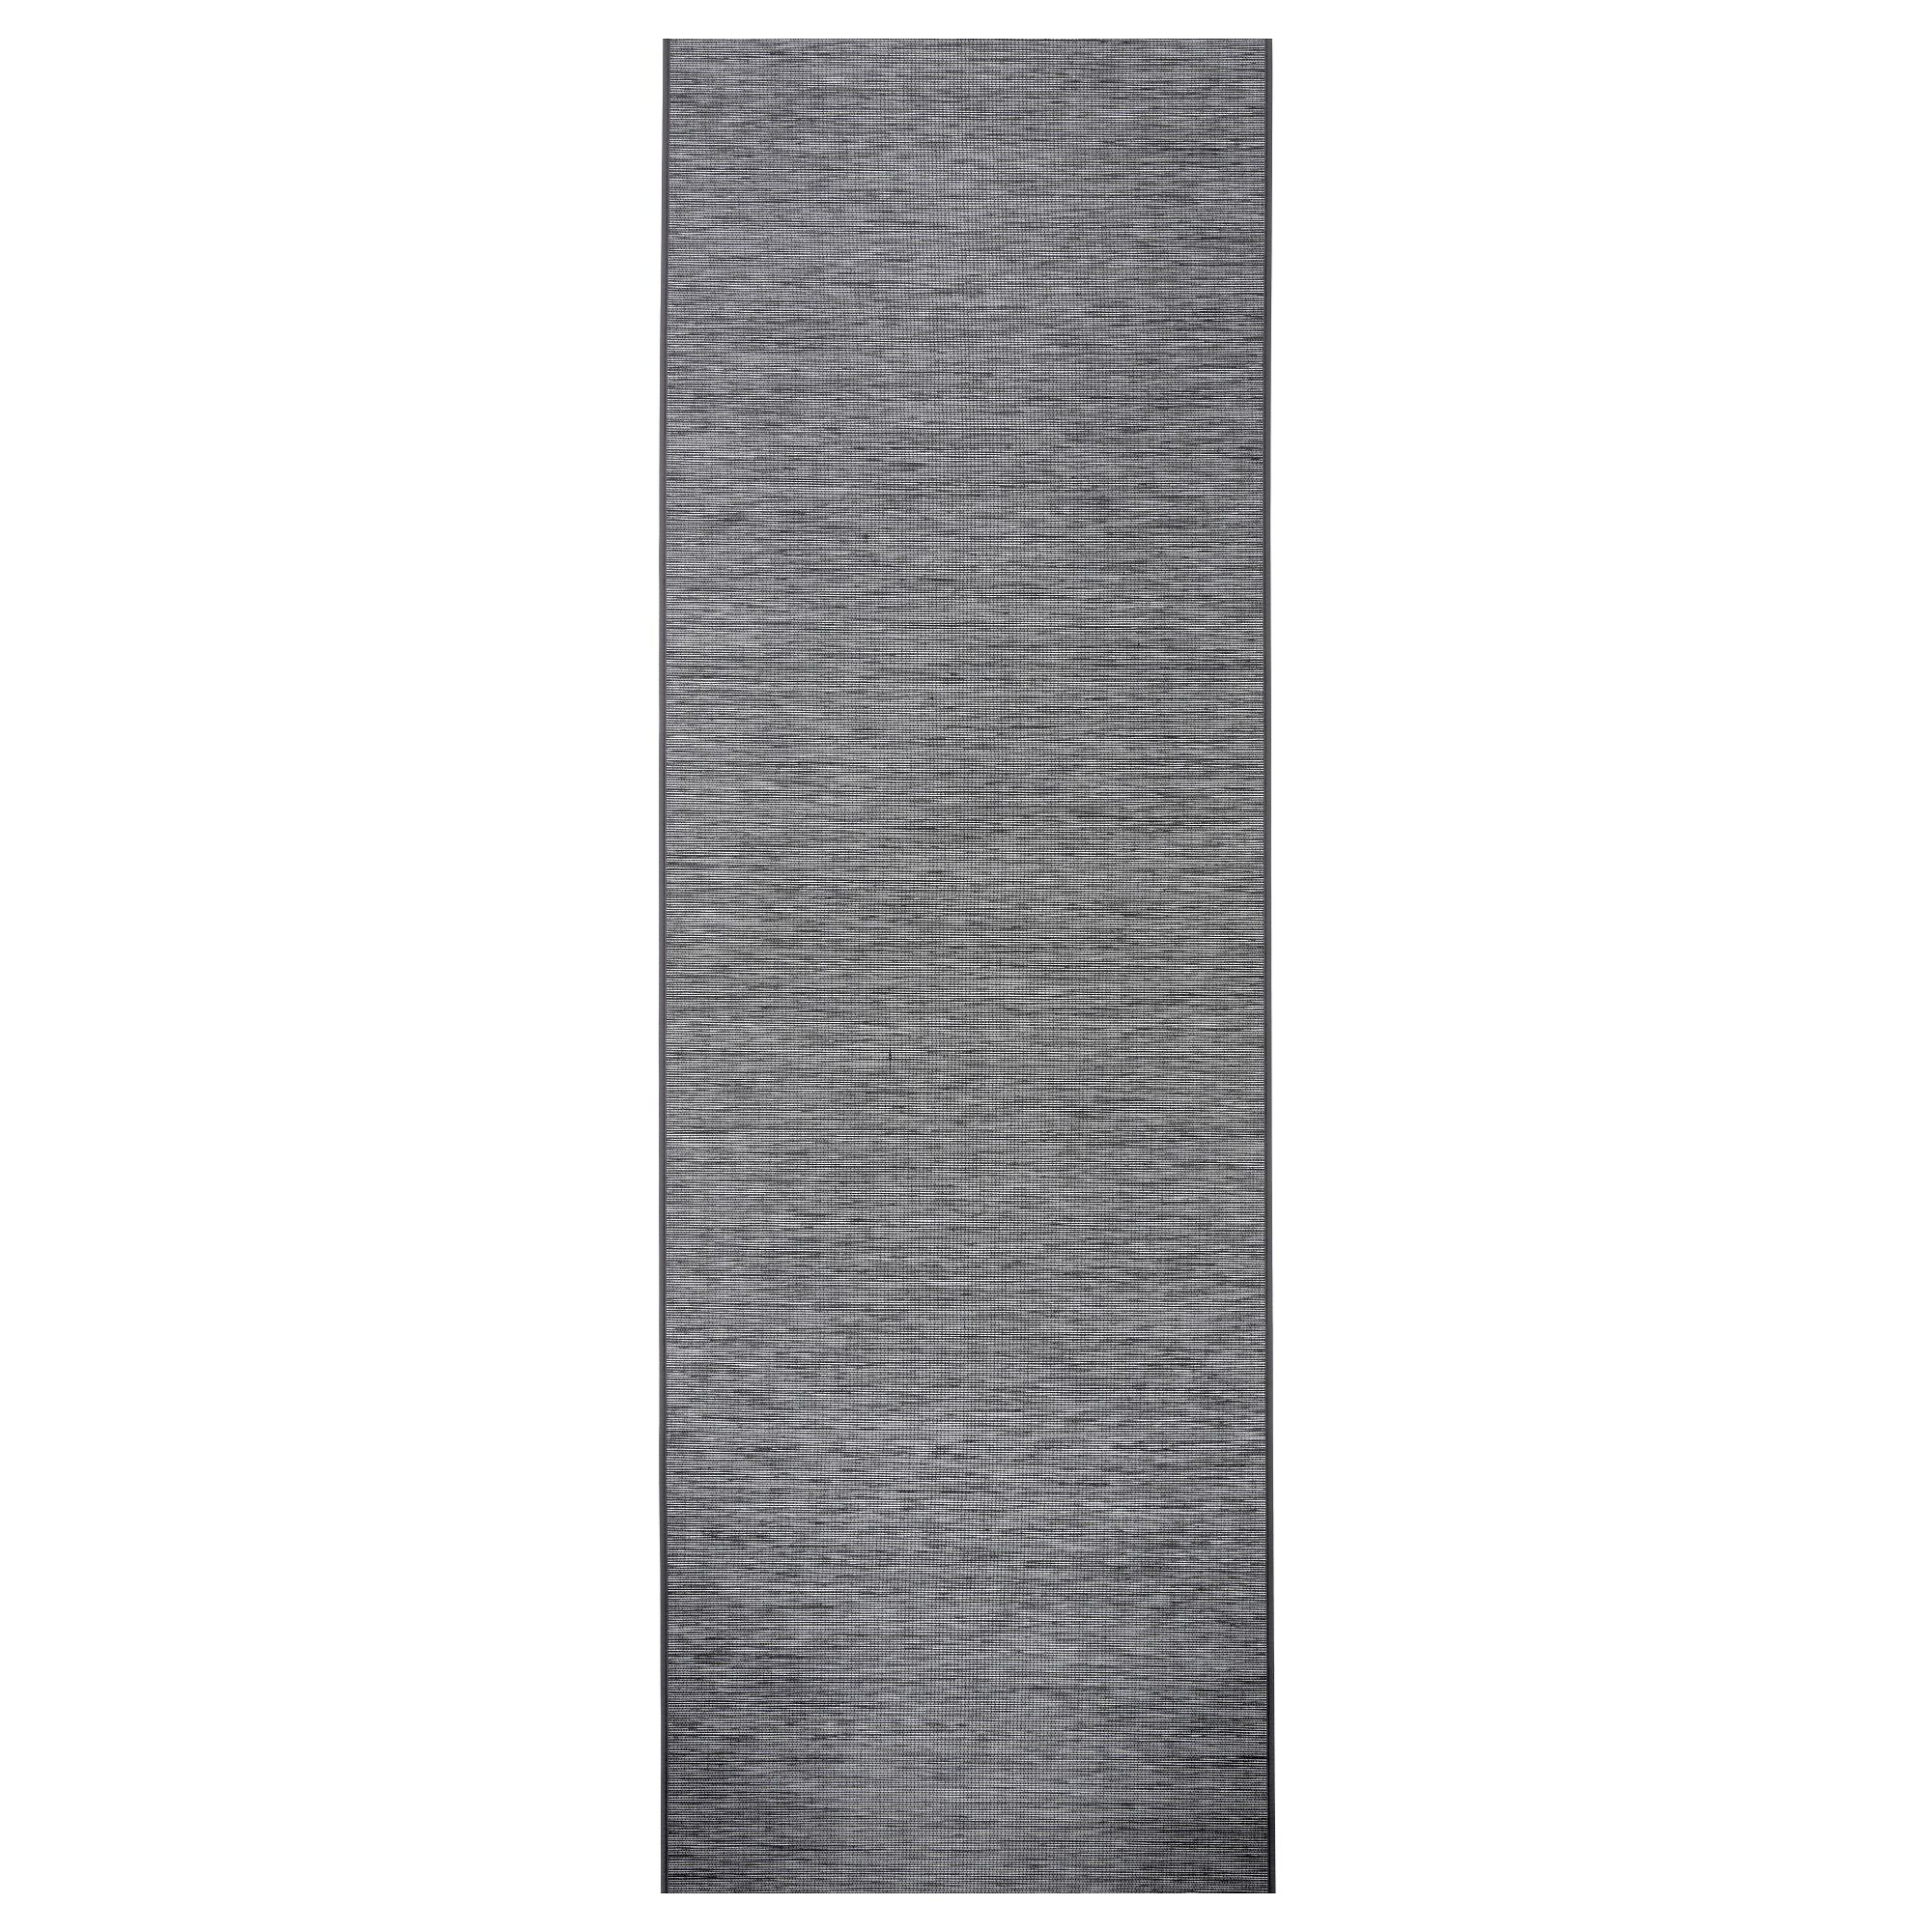 FÖNSTERVIVA Panel Curtain - Dark Gray 24x118 ""